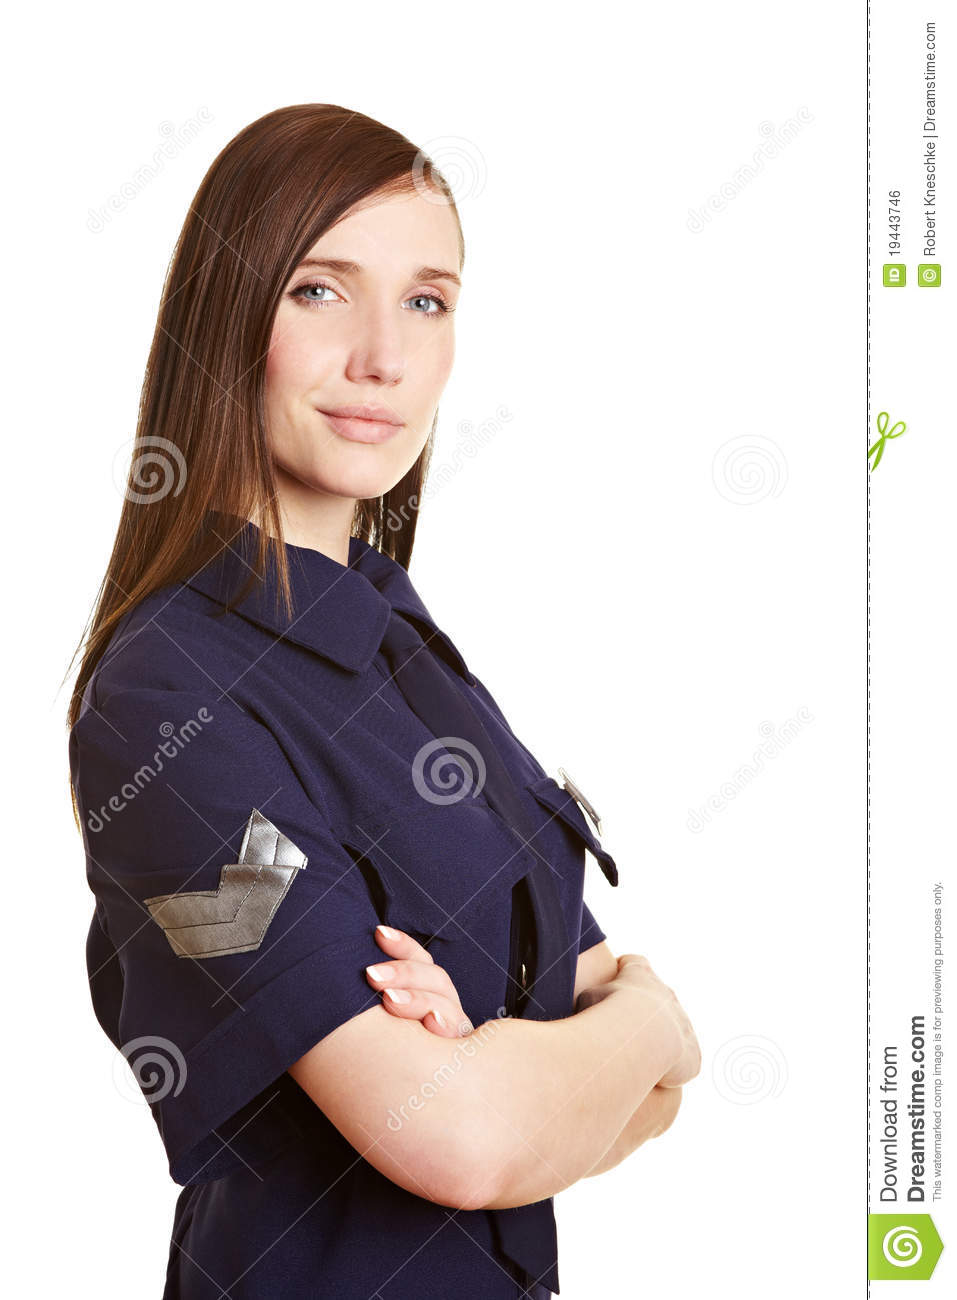 essay women in policing The role of women in policing today over the past few decades, policing and  police officers have changed policing used to lean heavily toward physical.